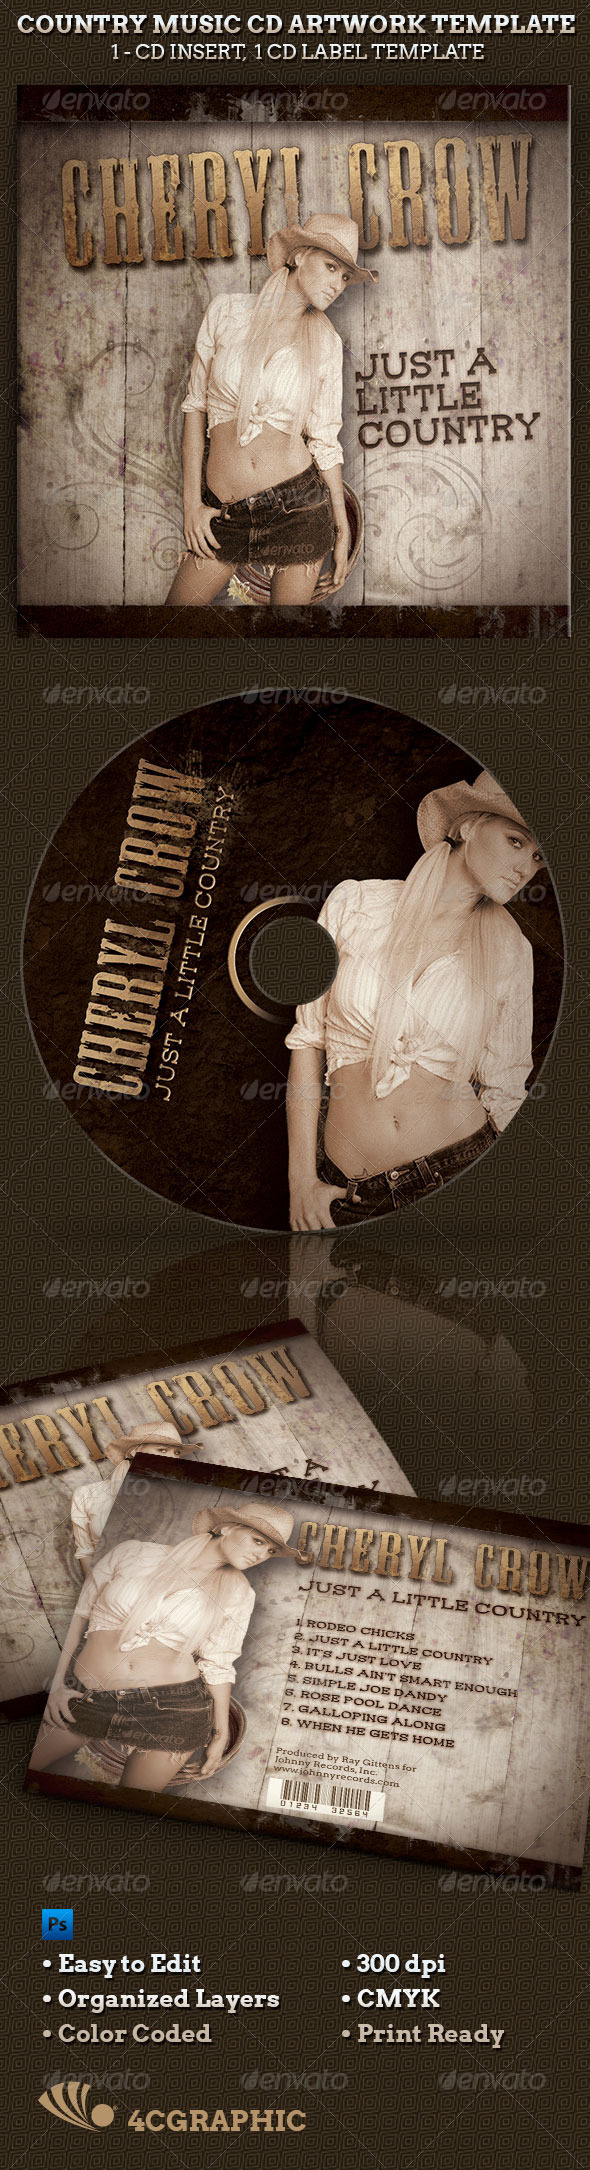 Country Western Music CD Artwork Template - CD & DVD Artwork Print Templates